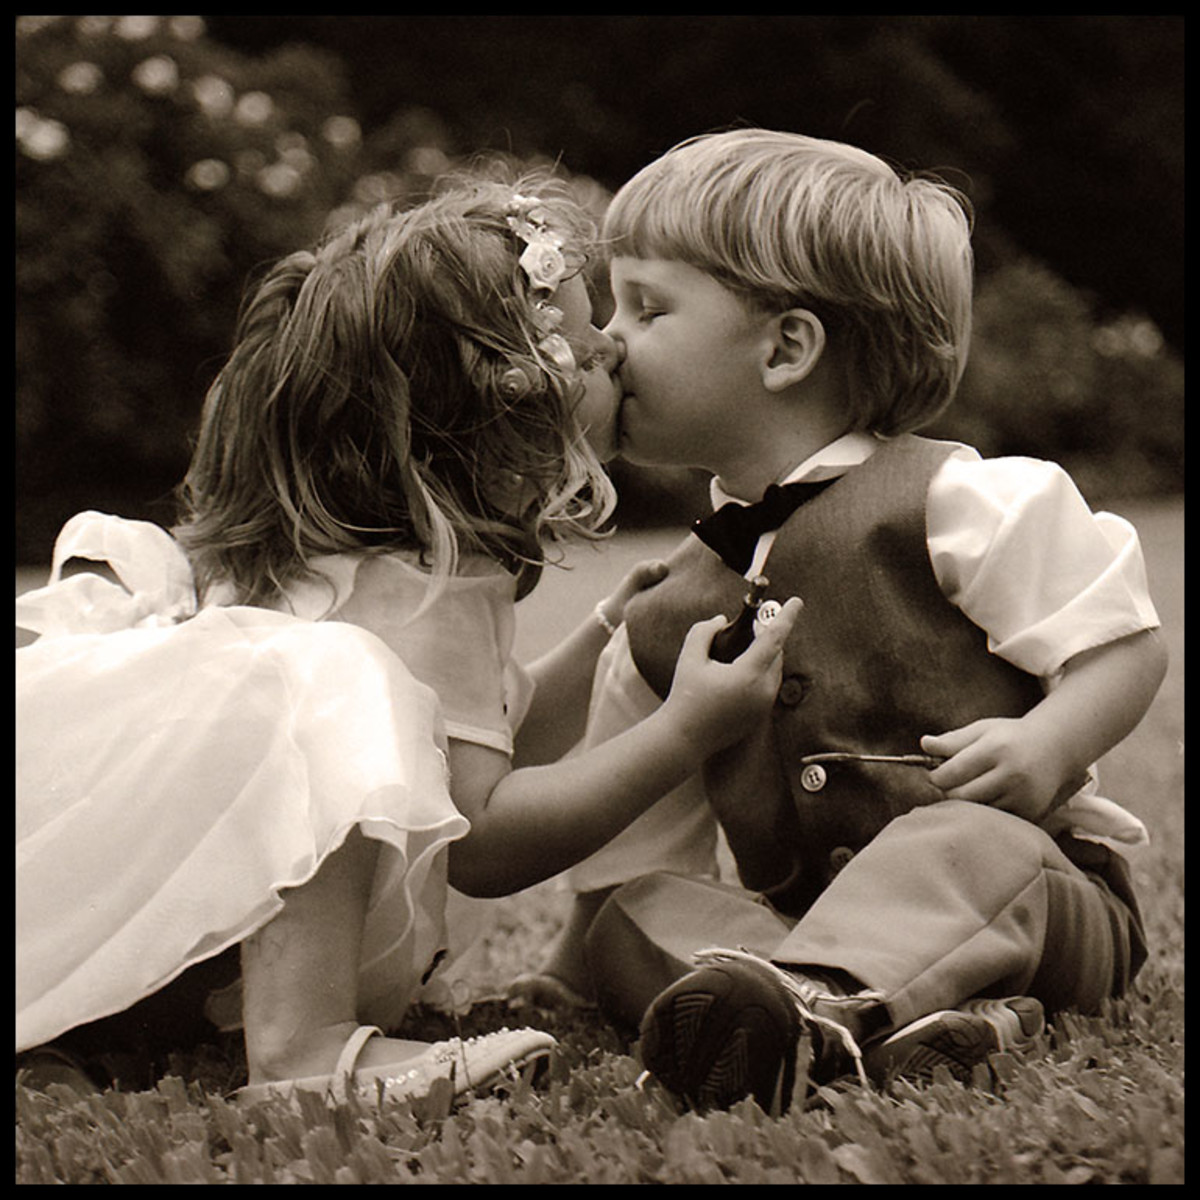 A wonderful photographer.  If you'd like to see more of this photographer's amazing photos, just click the link.  Truly a great artist!